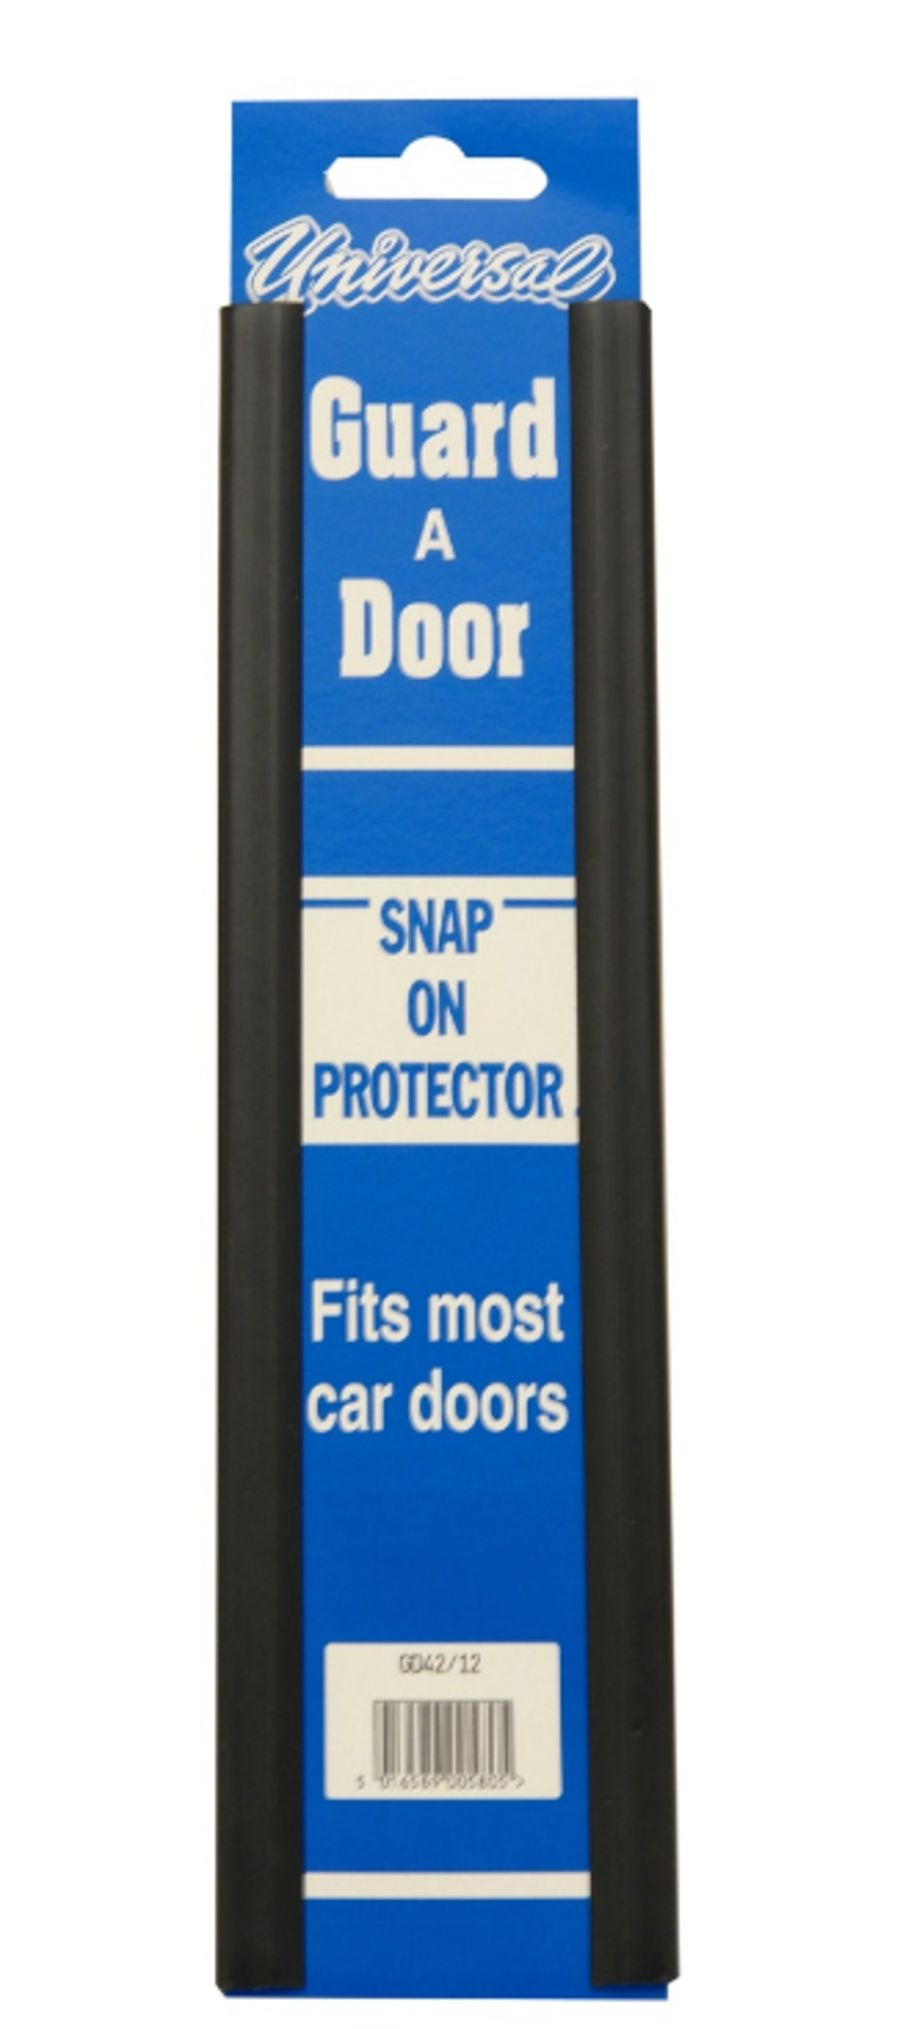 Universal Snap on Door Guard 12-inch - Black